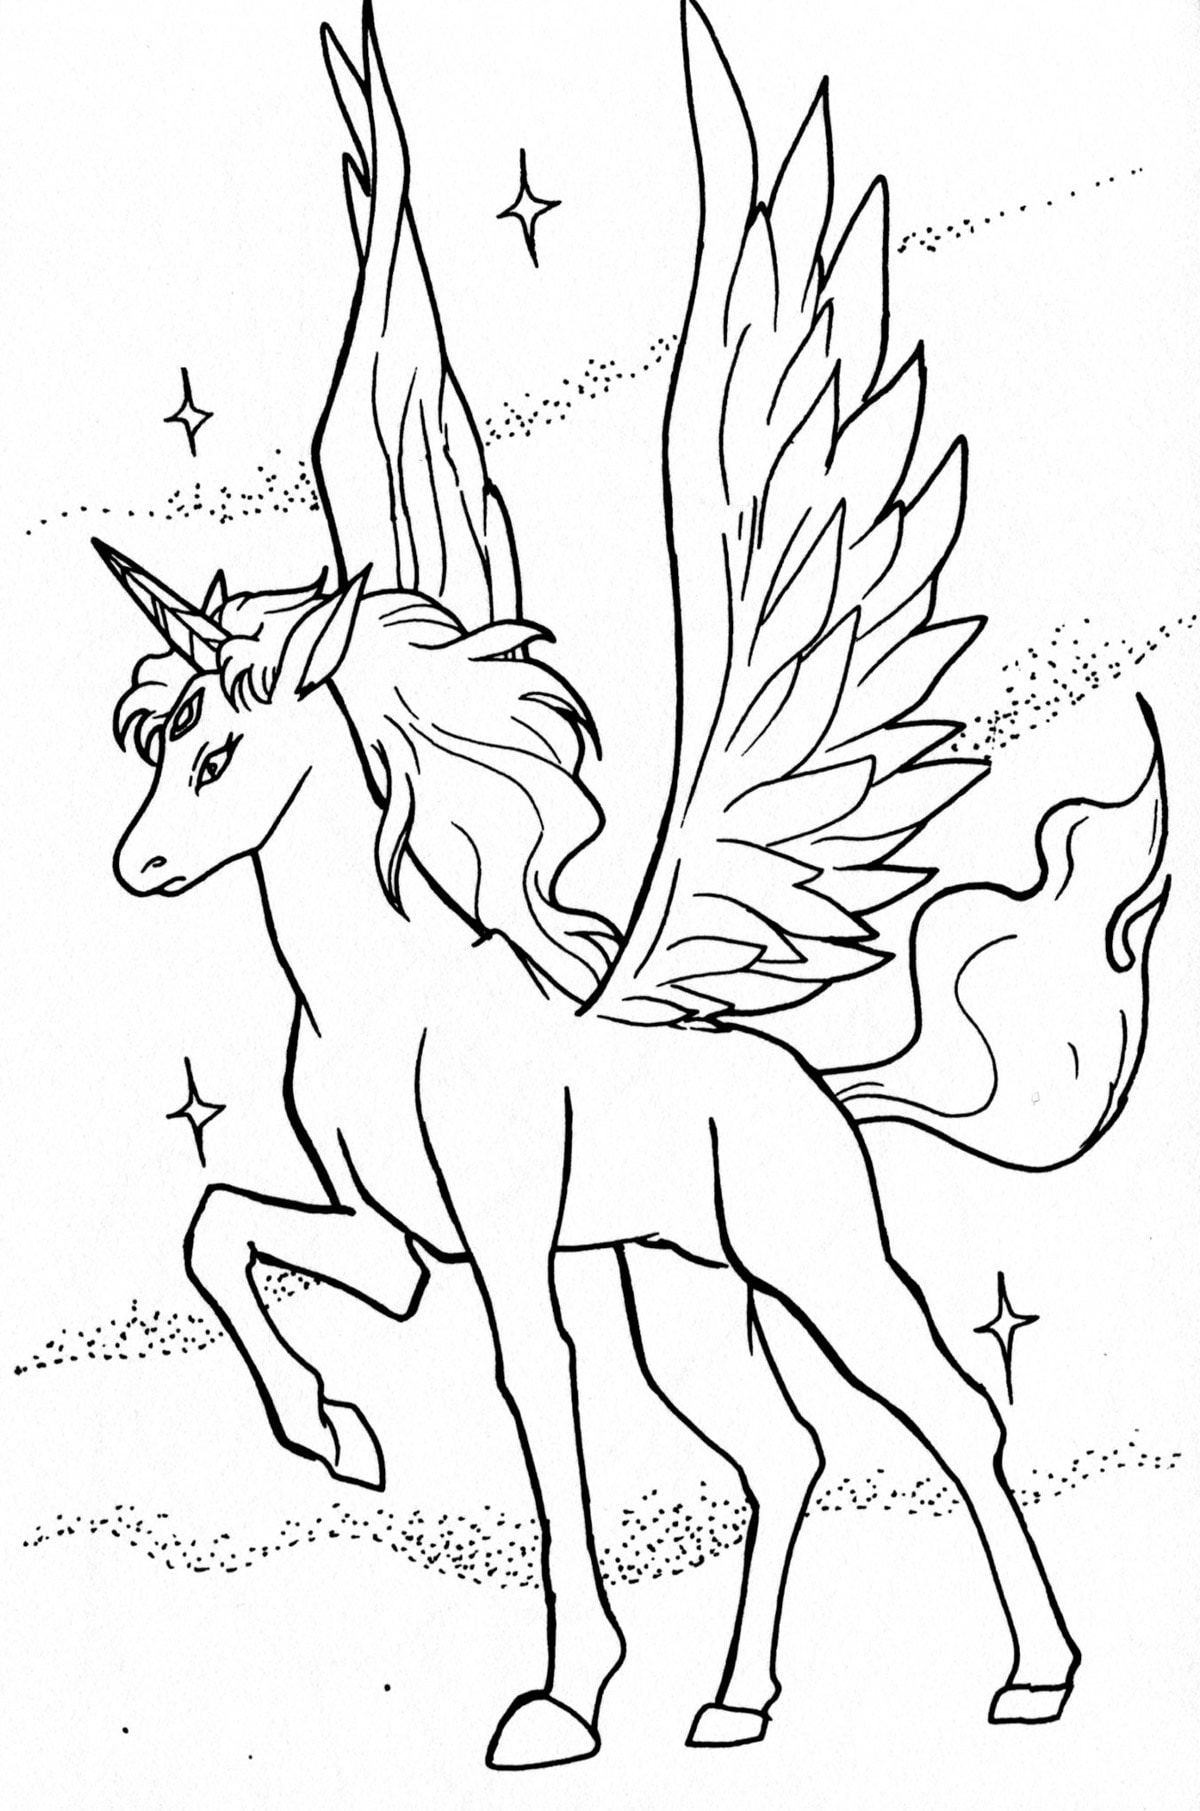 coloring for unicorn unicorn with wings and background unicorns adult unicorn for coloring